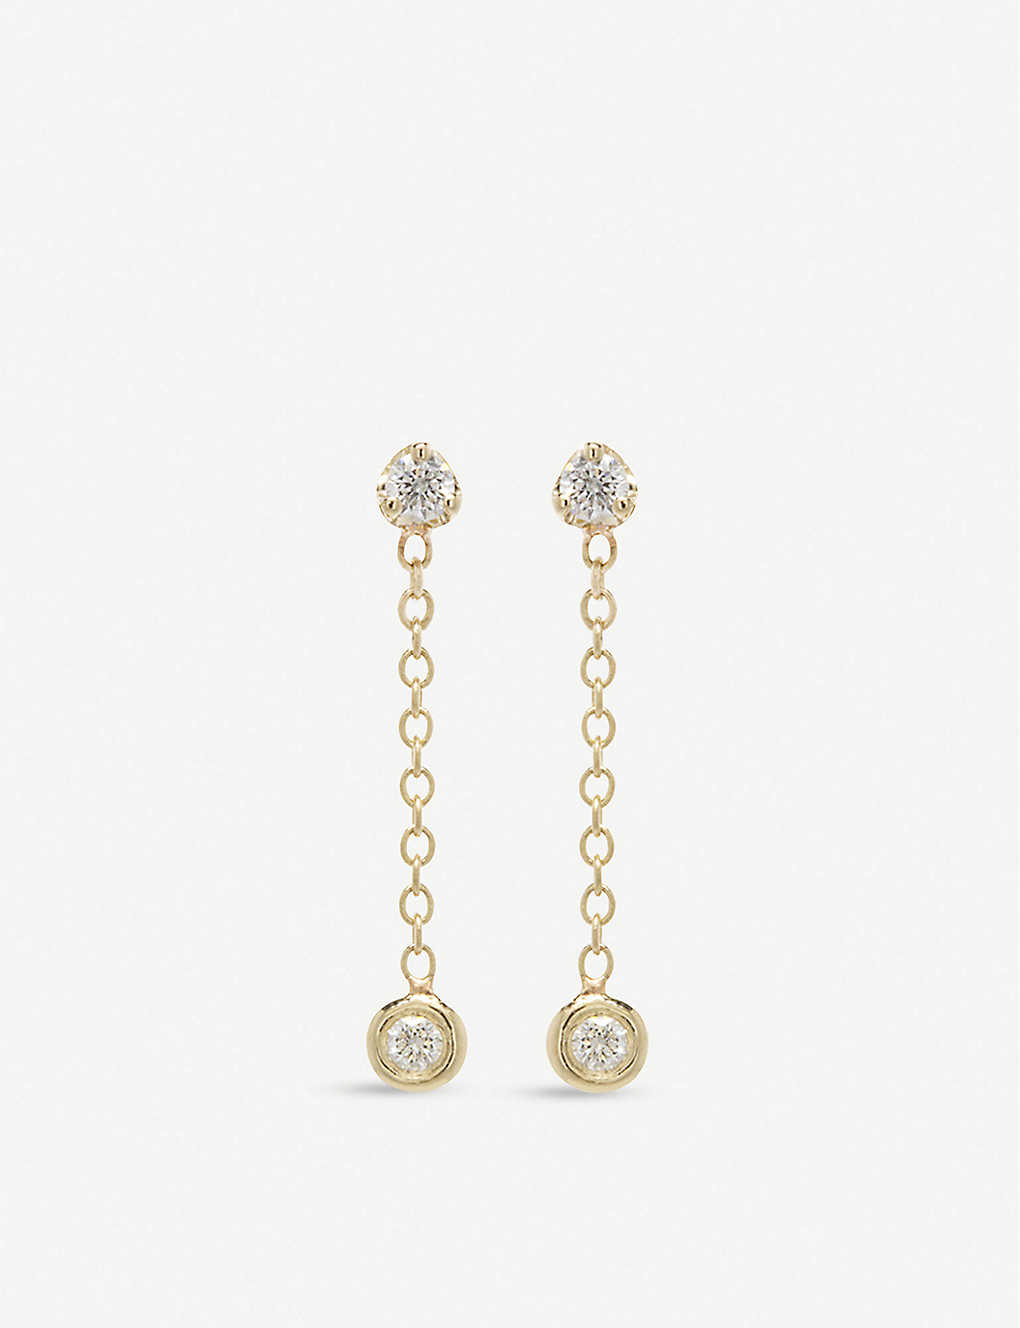 THE ALKEMISTRY: Zoë Chicco small 14ct yellow-gold and diamond drop earrings